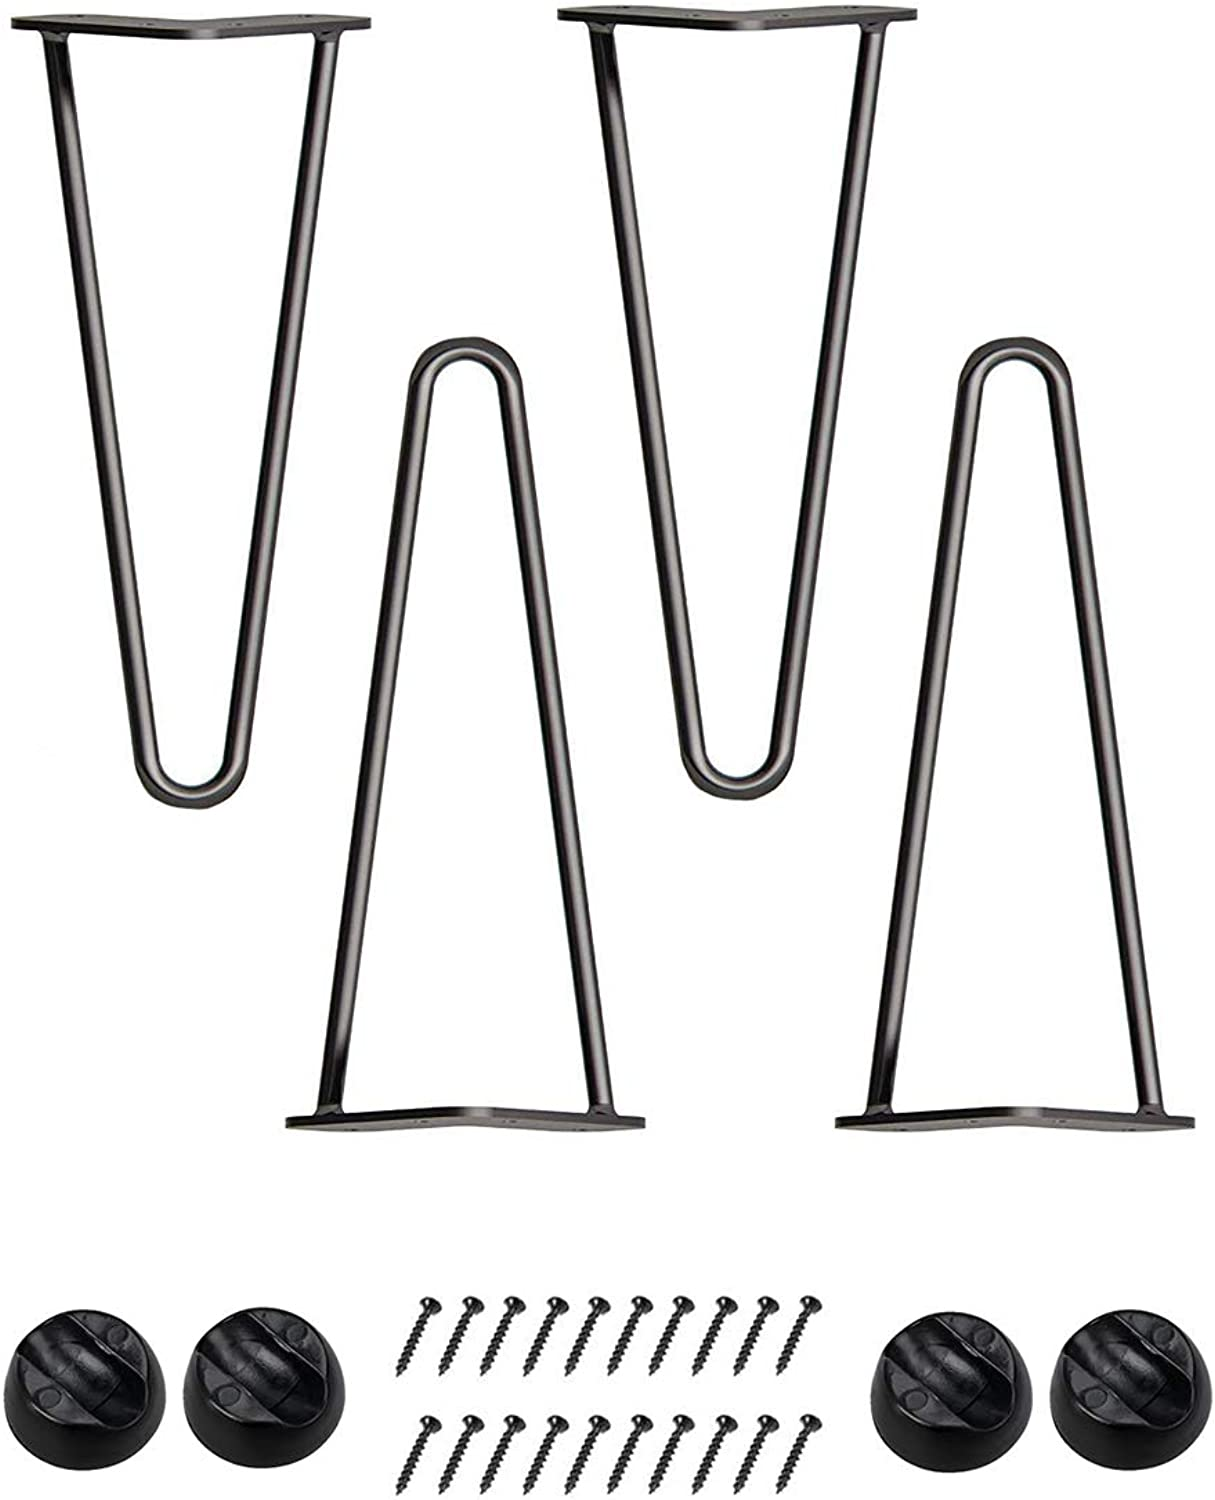 Bronkey 4PCS Industrial Vintage Style 3 8  Solid Bar 14  Black Hairpin Legs, Two Rods Double Weld Construction Design, Metal Steel Heavy Duty Table Legs, for DIY Coffee Shop Living Room TV Stand Sofa